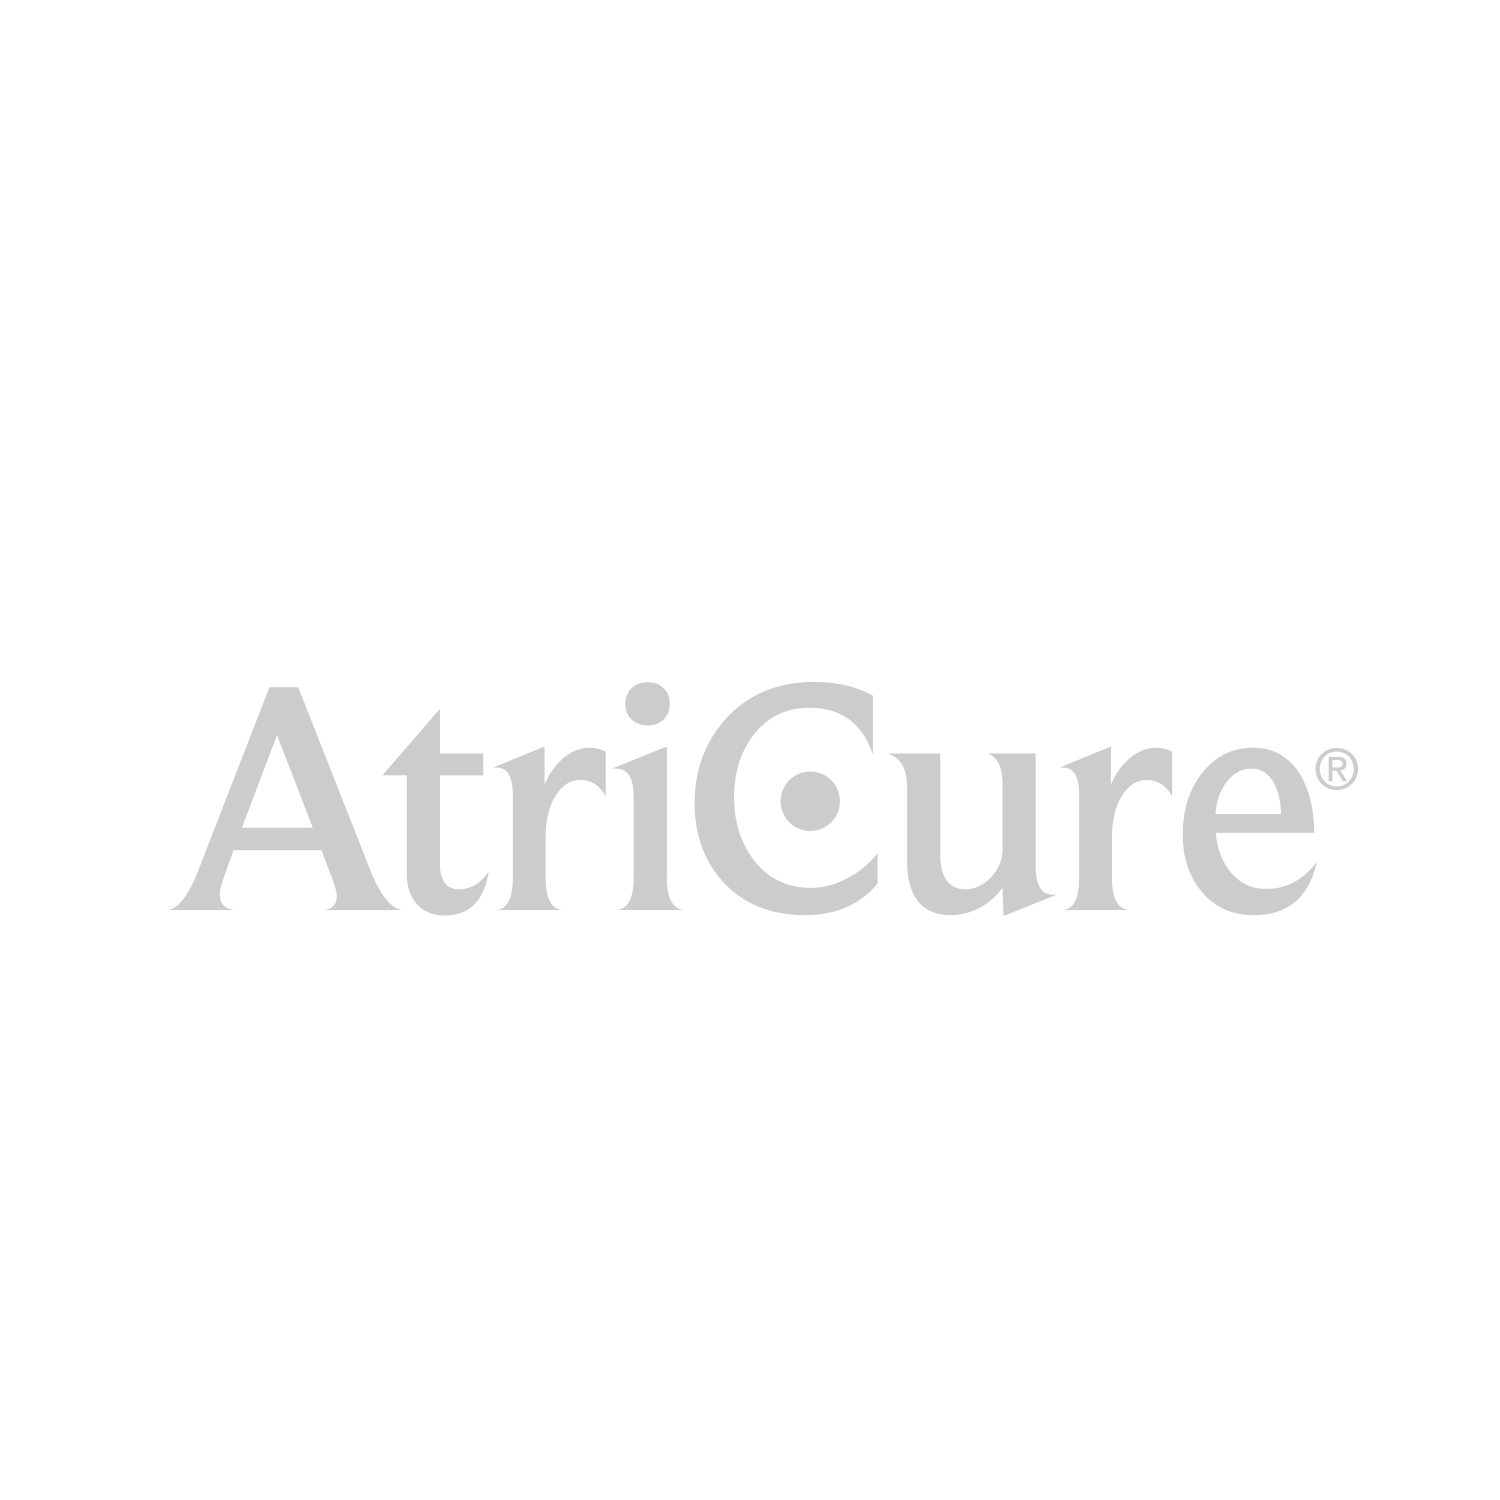 ATRICURE.png